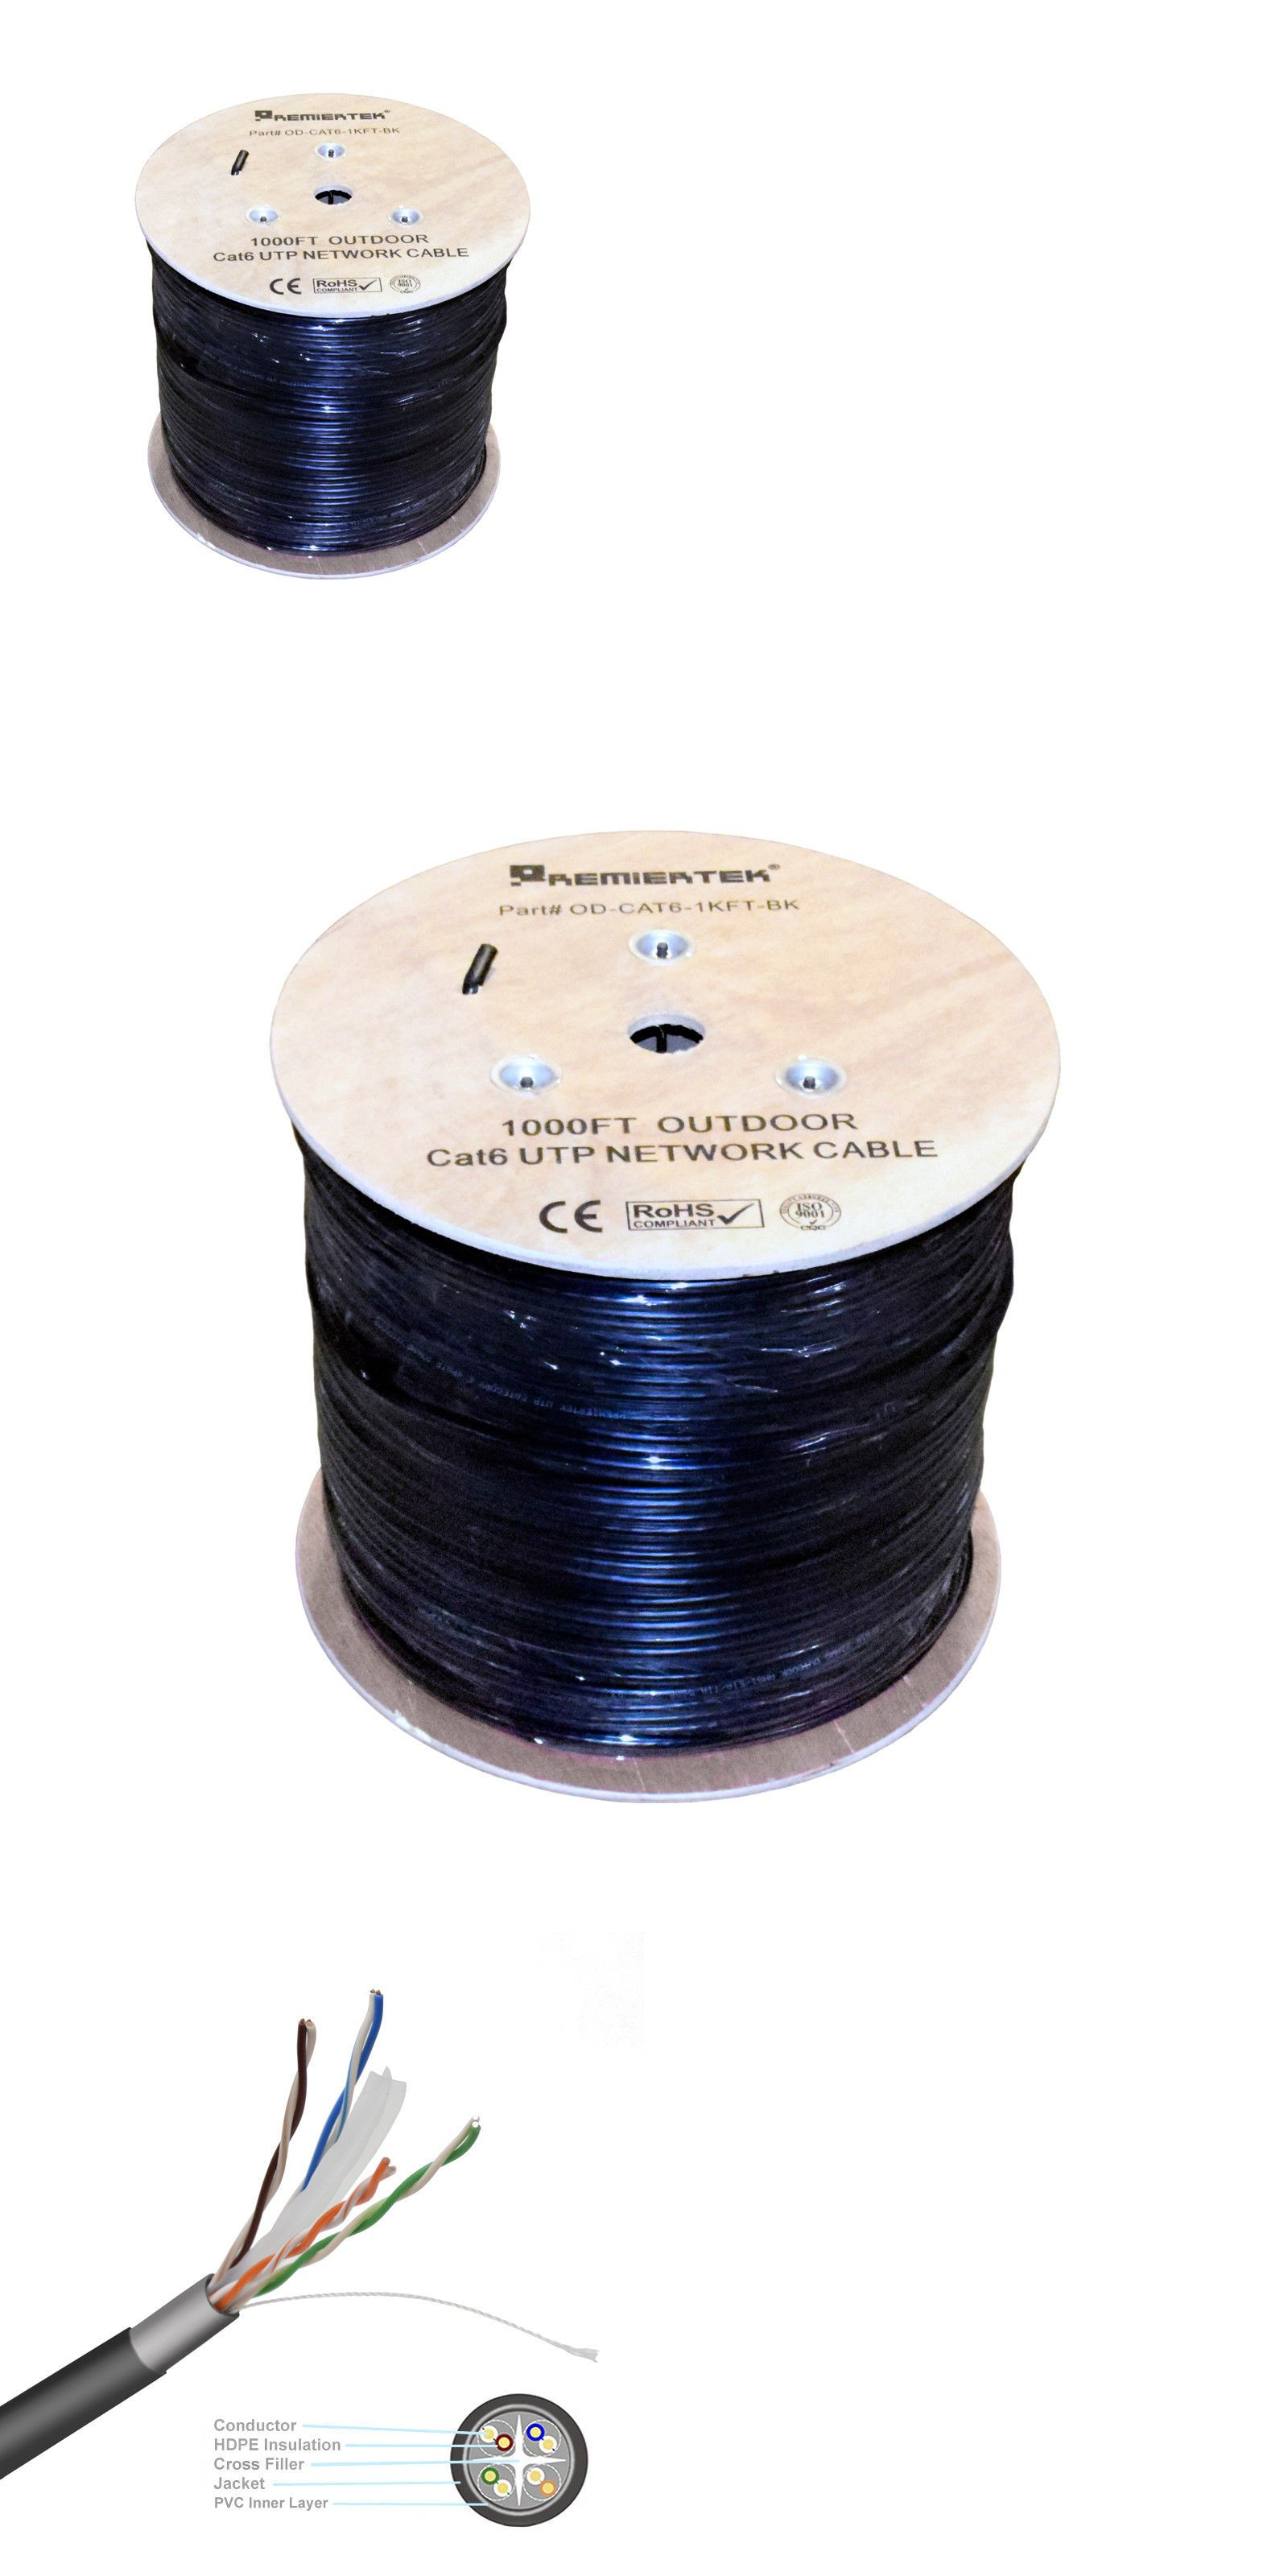 hight resolution of ethernet cables rj 45 8p8c 64035 1000 ft cat6 uv cmx 23 awg waterproof outdoor direct burial solid network cable buy it now only 65 46 on ebay